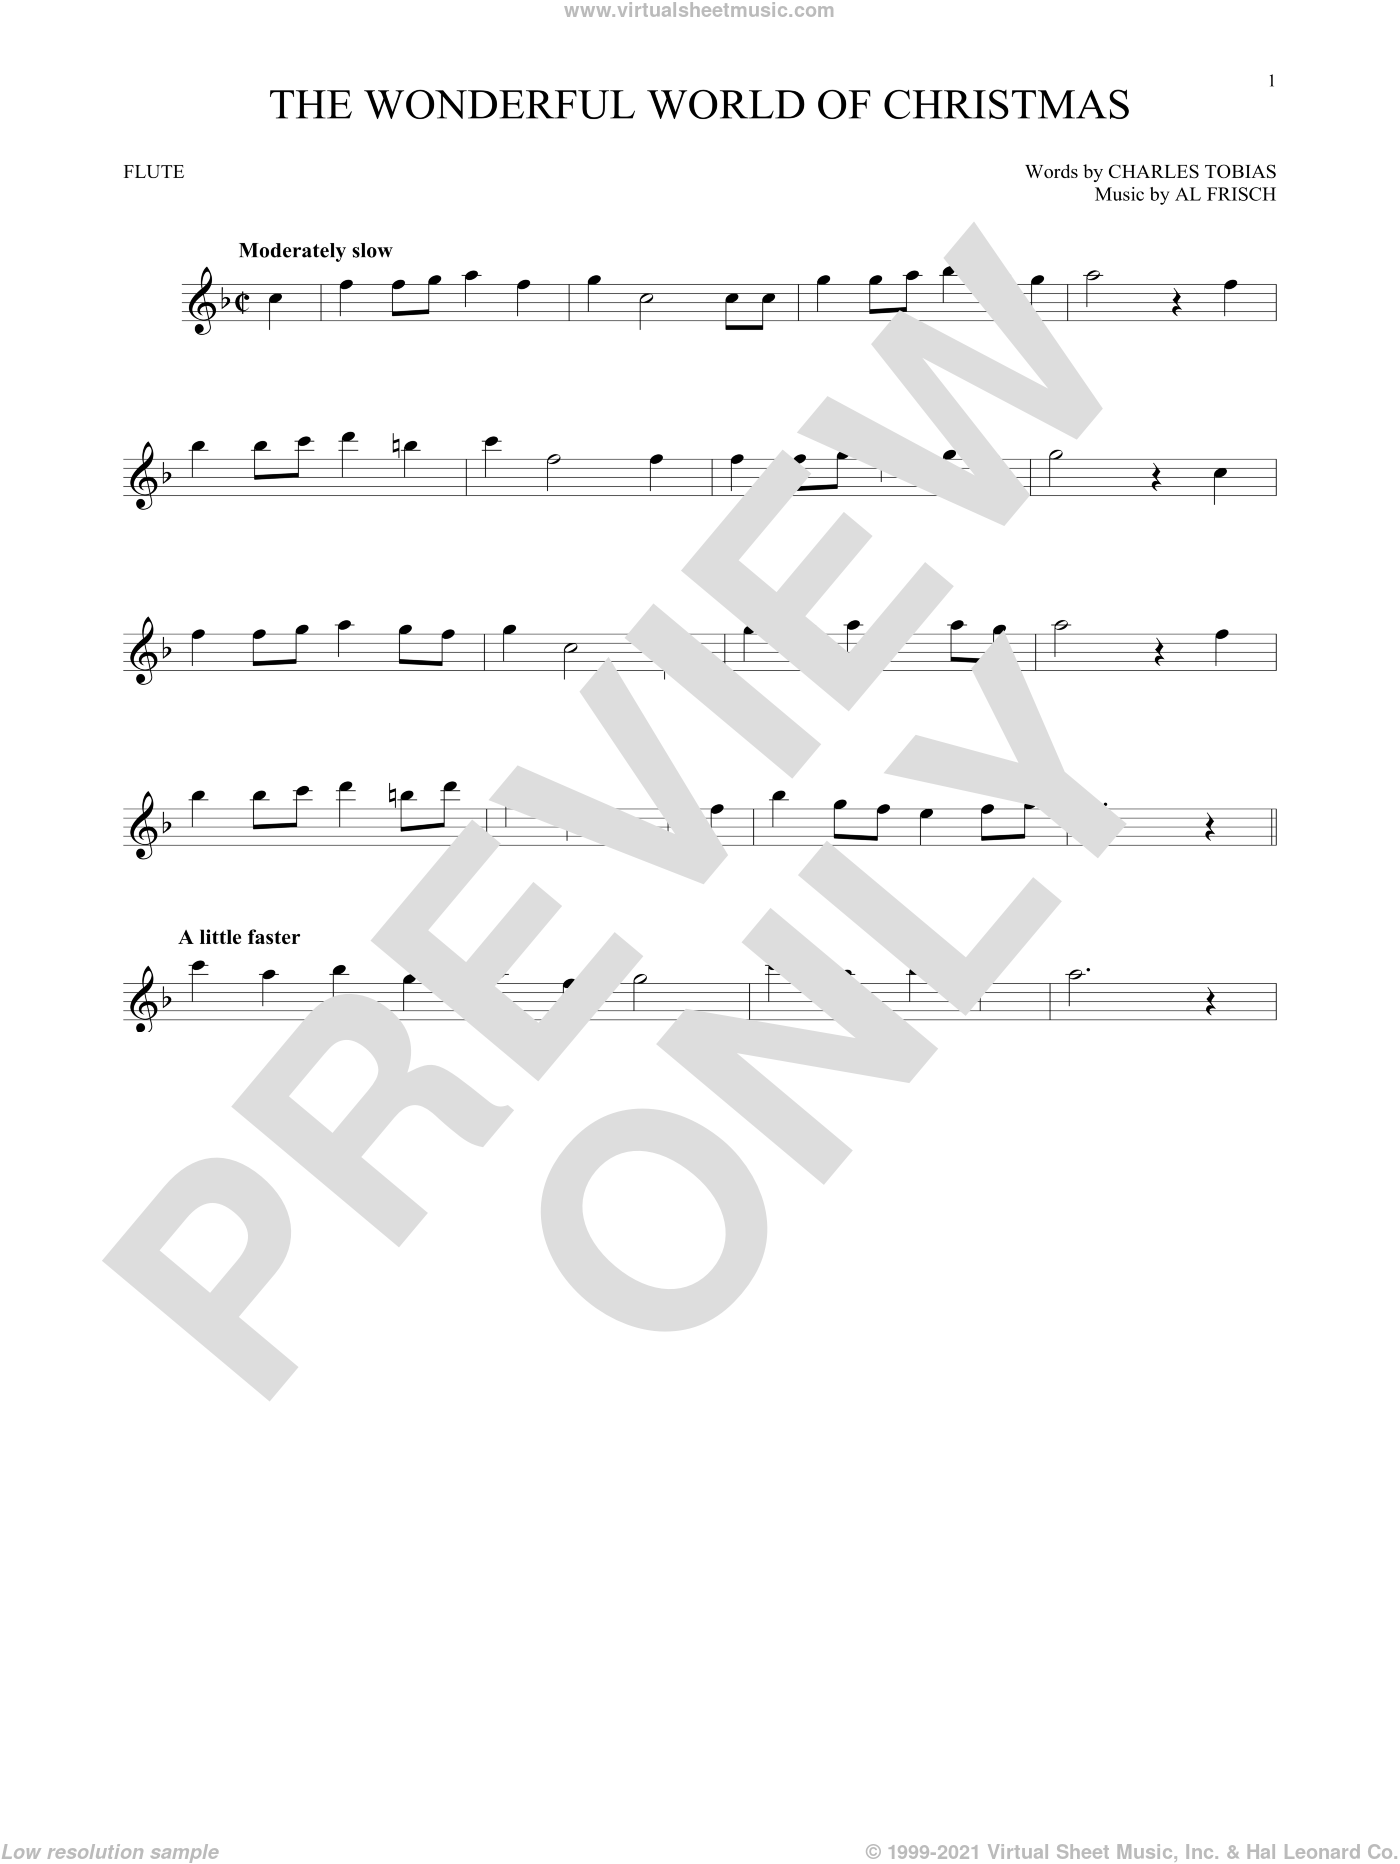 The Wonderful World Of Christmas sheet music for flute solo by Elvis Presley, Al Frisch and Charles Tobias, intermediate skill level